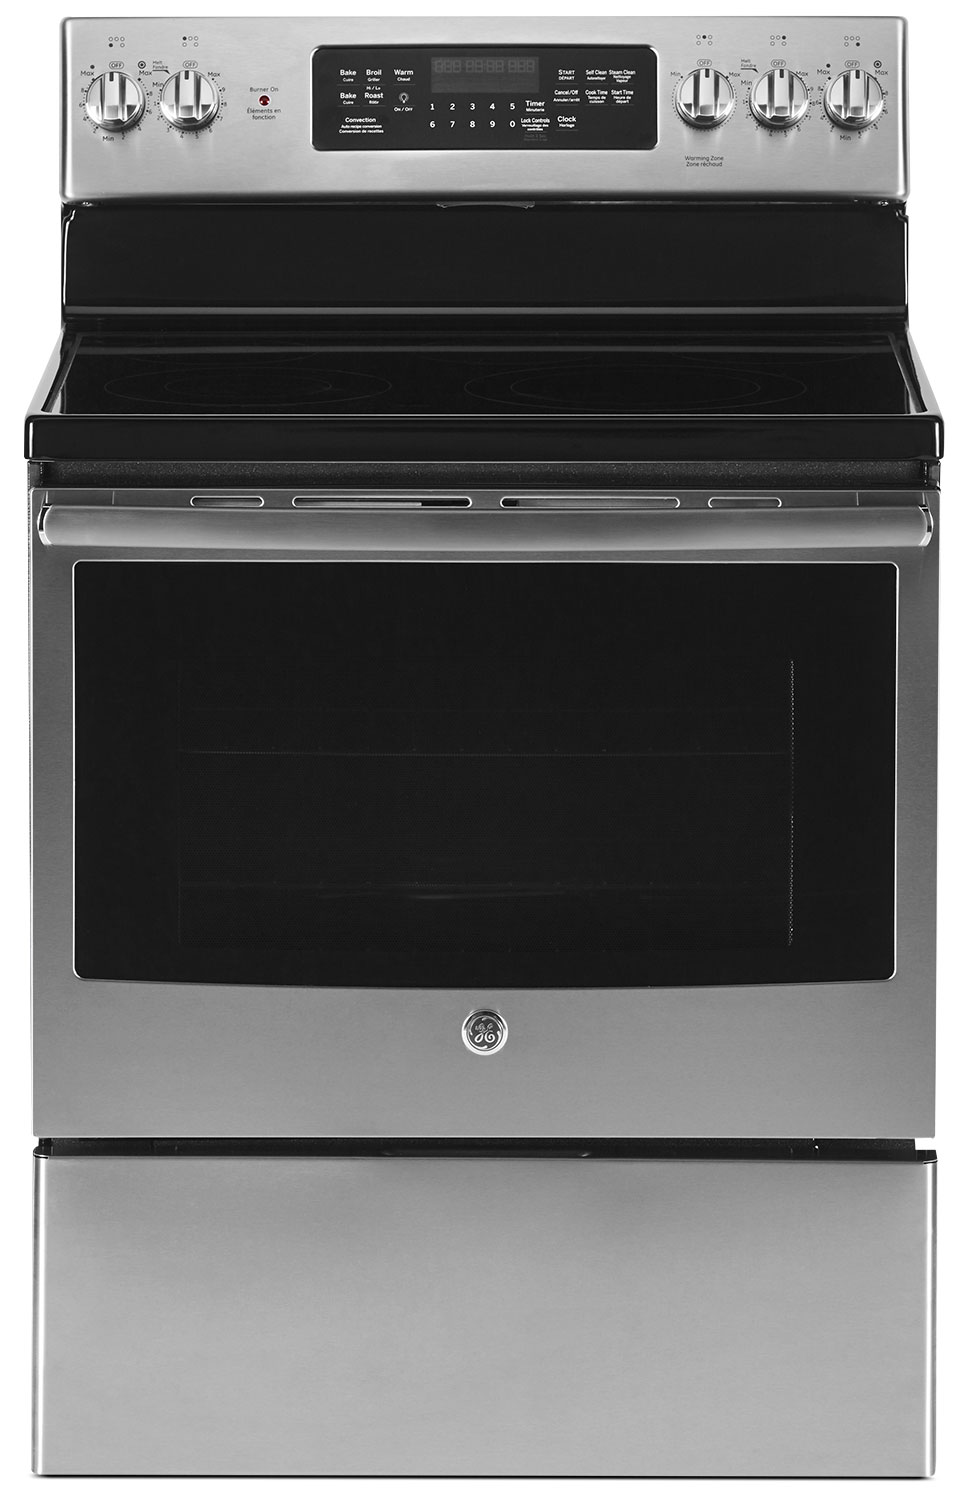 Cooking Products - GE 5.0 Cu. Ft. Freestanding Electric Range – JCB840SKSS